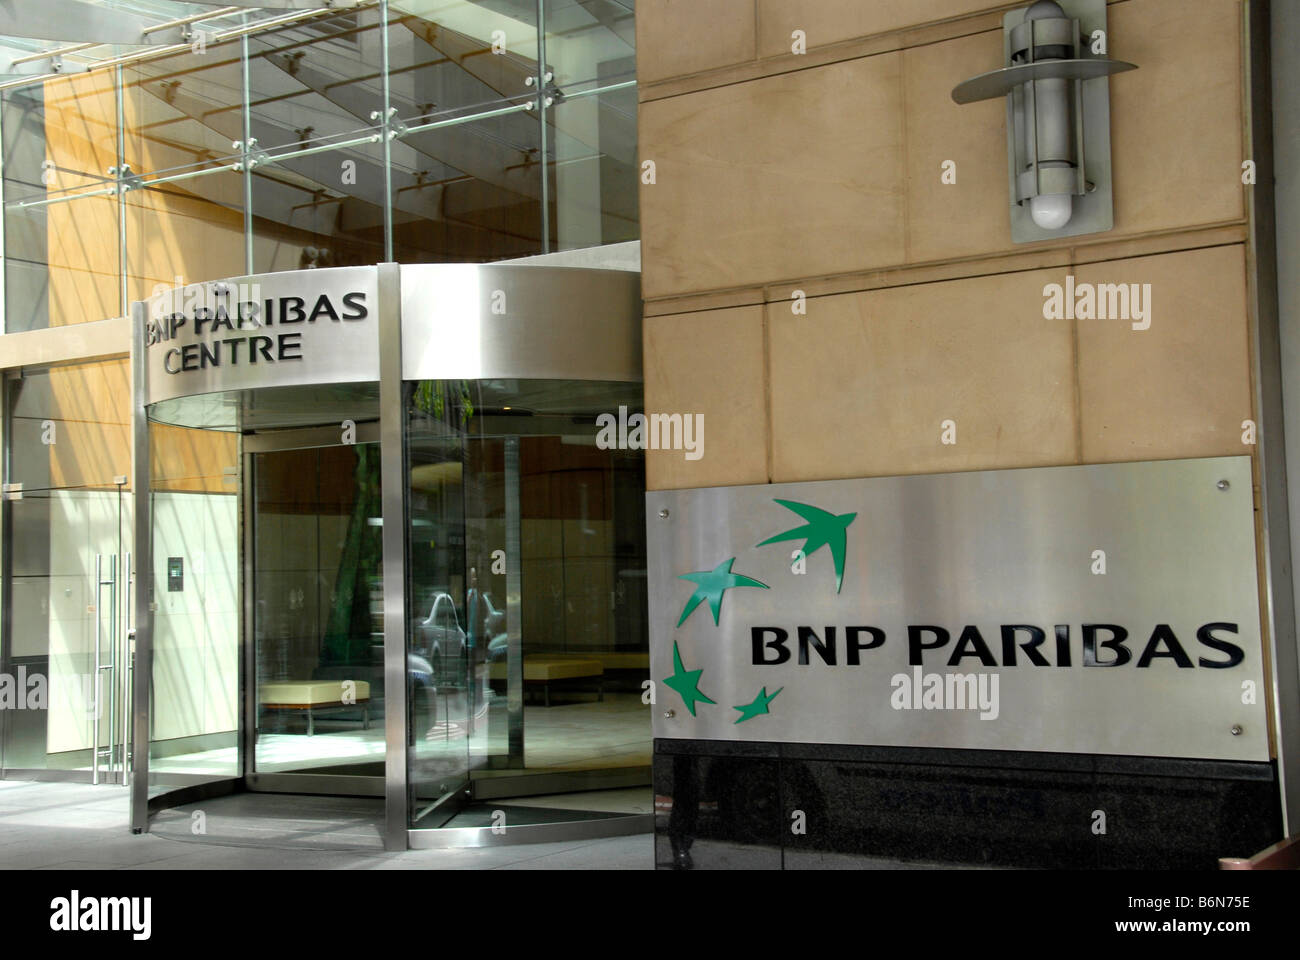 959 #91793A Front Door Of BNP Paribas Centre Sydney Australia Stock Photo Royalty  pic Front Doors Australia 41811300